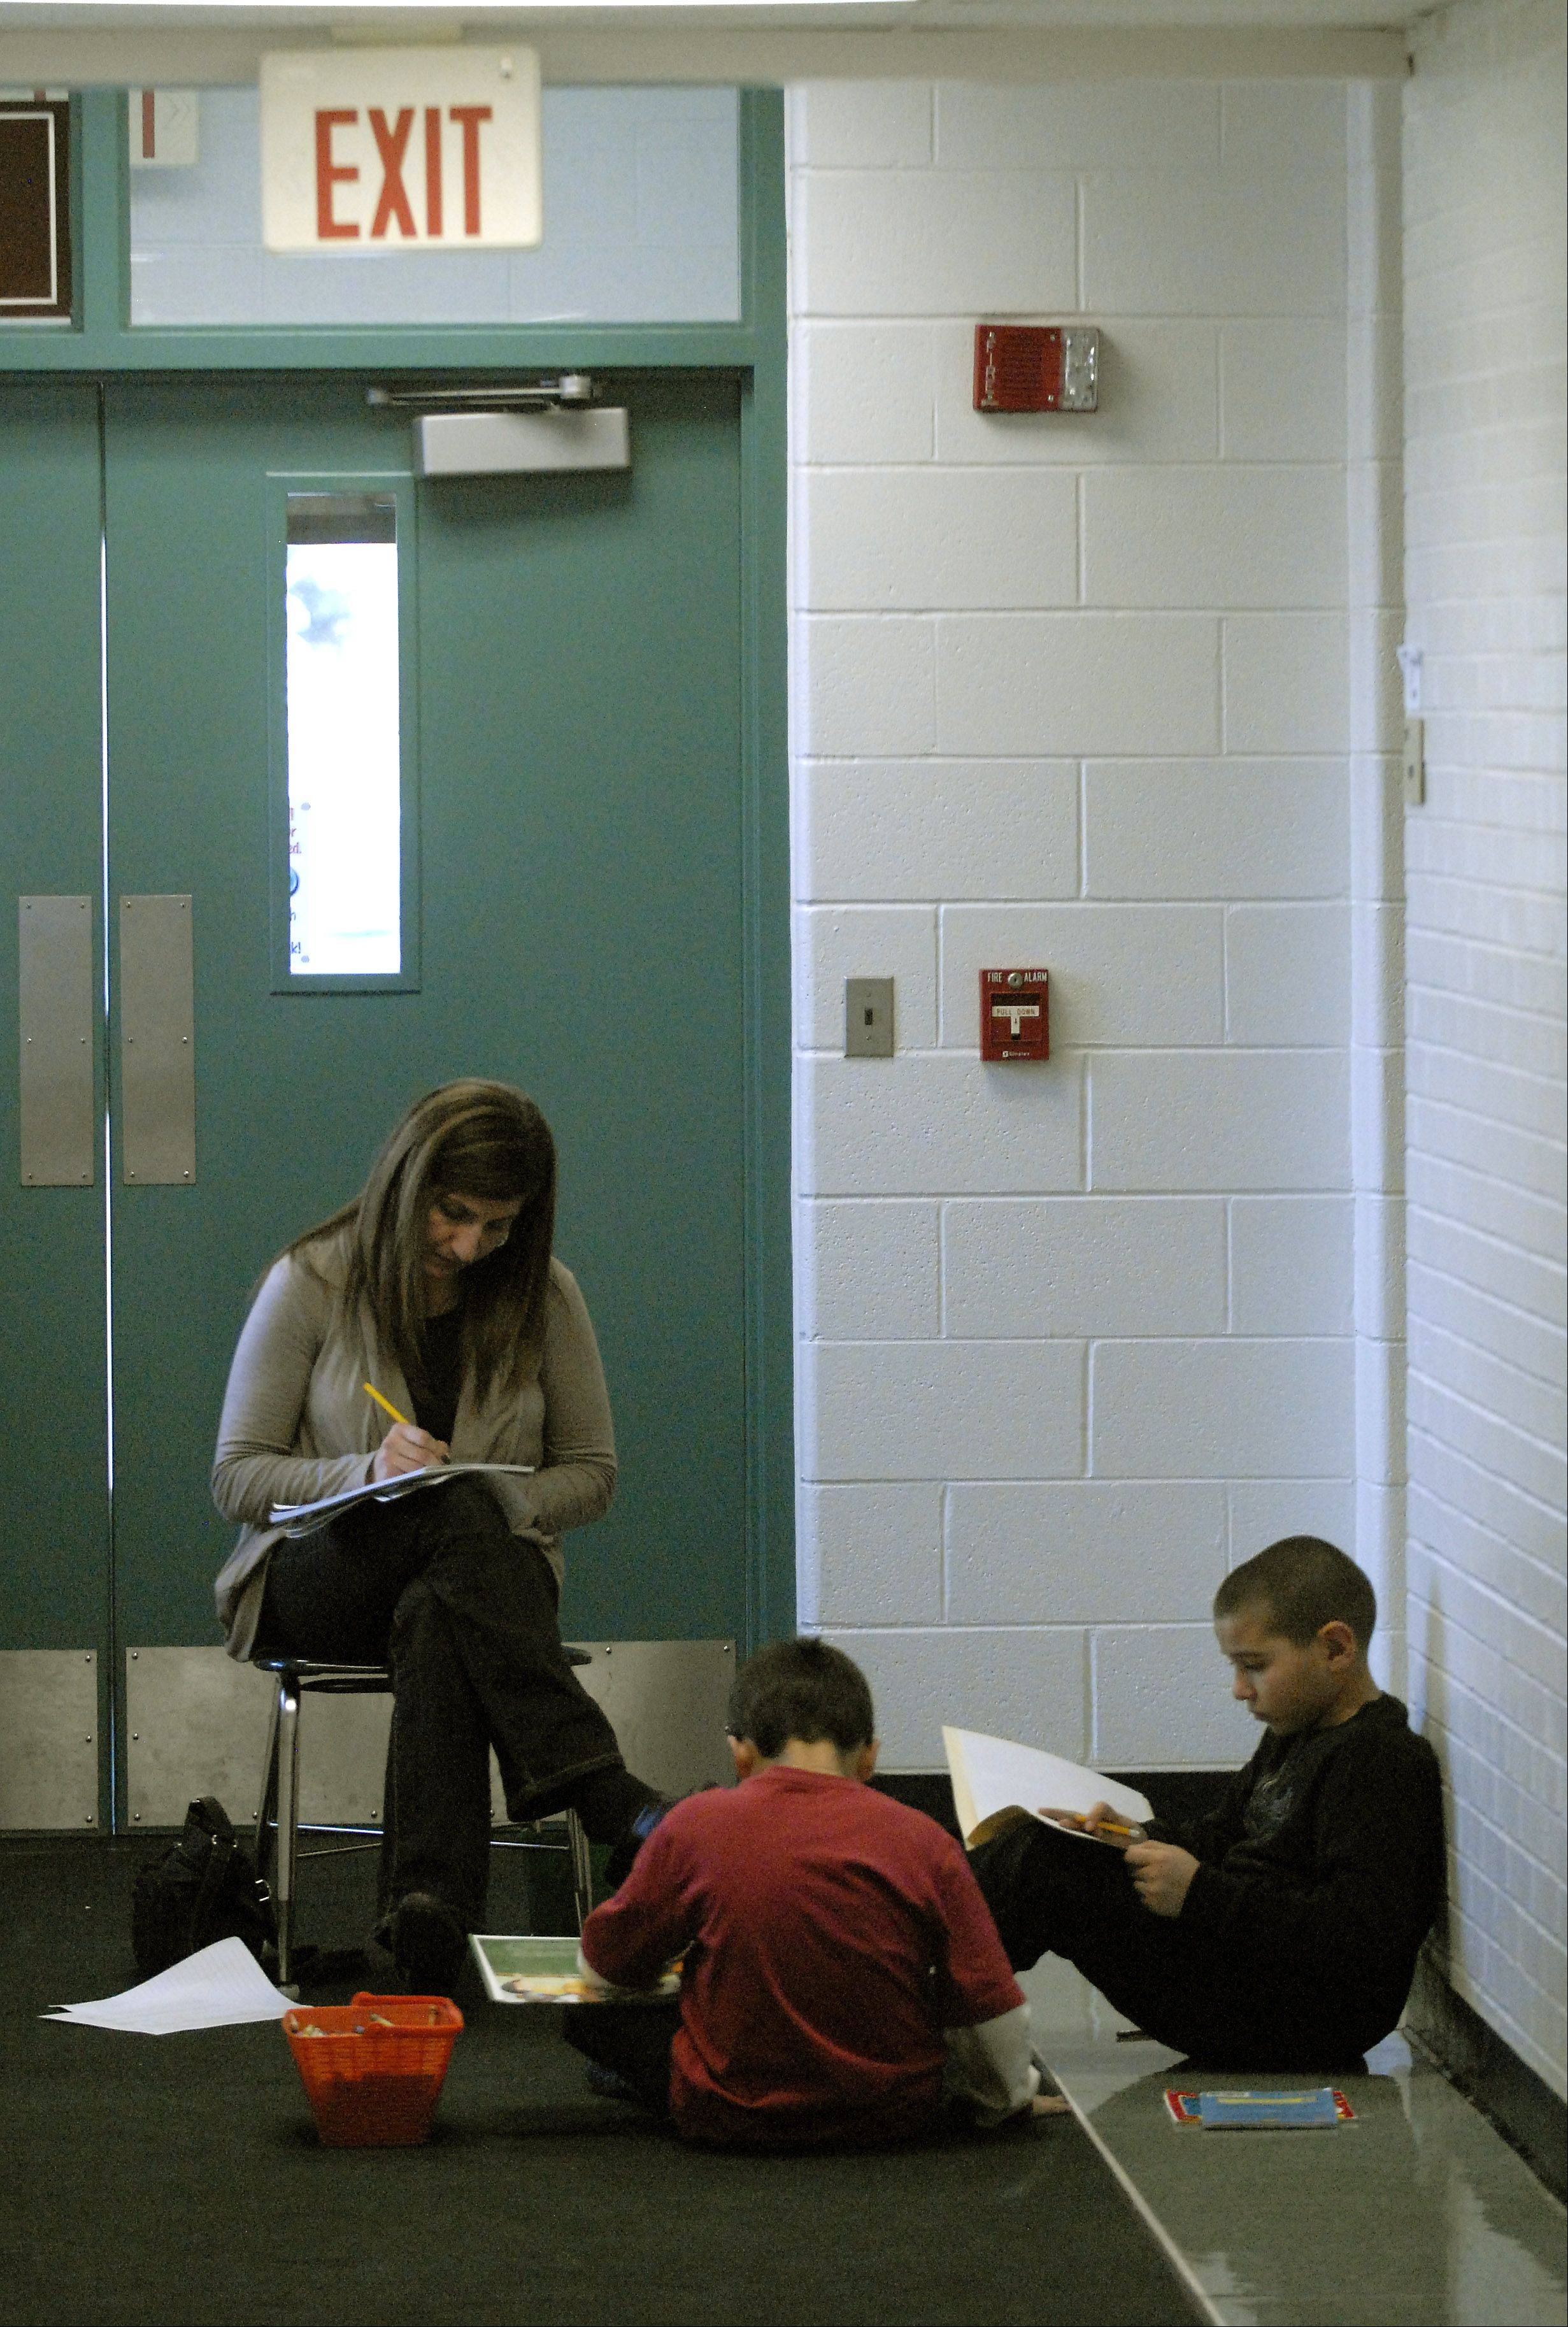 A teacher works with students in the hallway at Robert Frost Elementary School in Mount Prospect. Elk Grove Township Elementary District 59 will conduct three public forums to address overcrowding at the school.